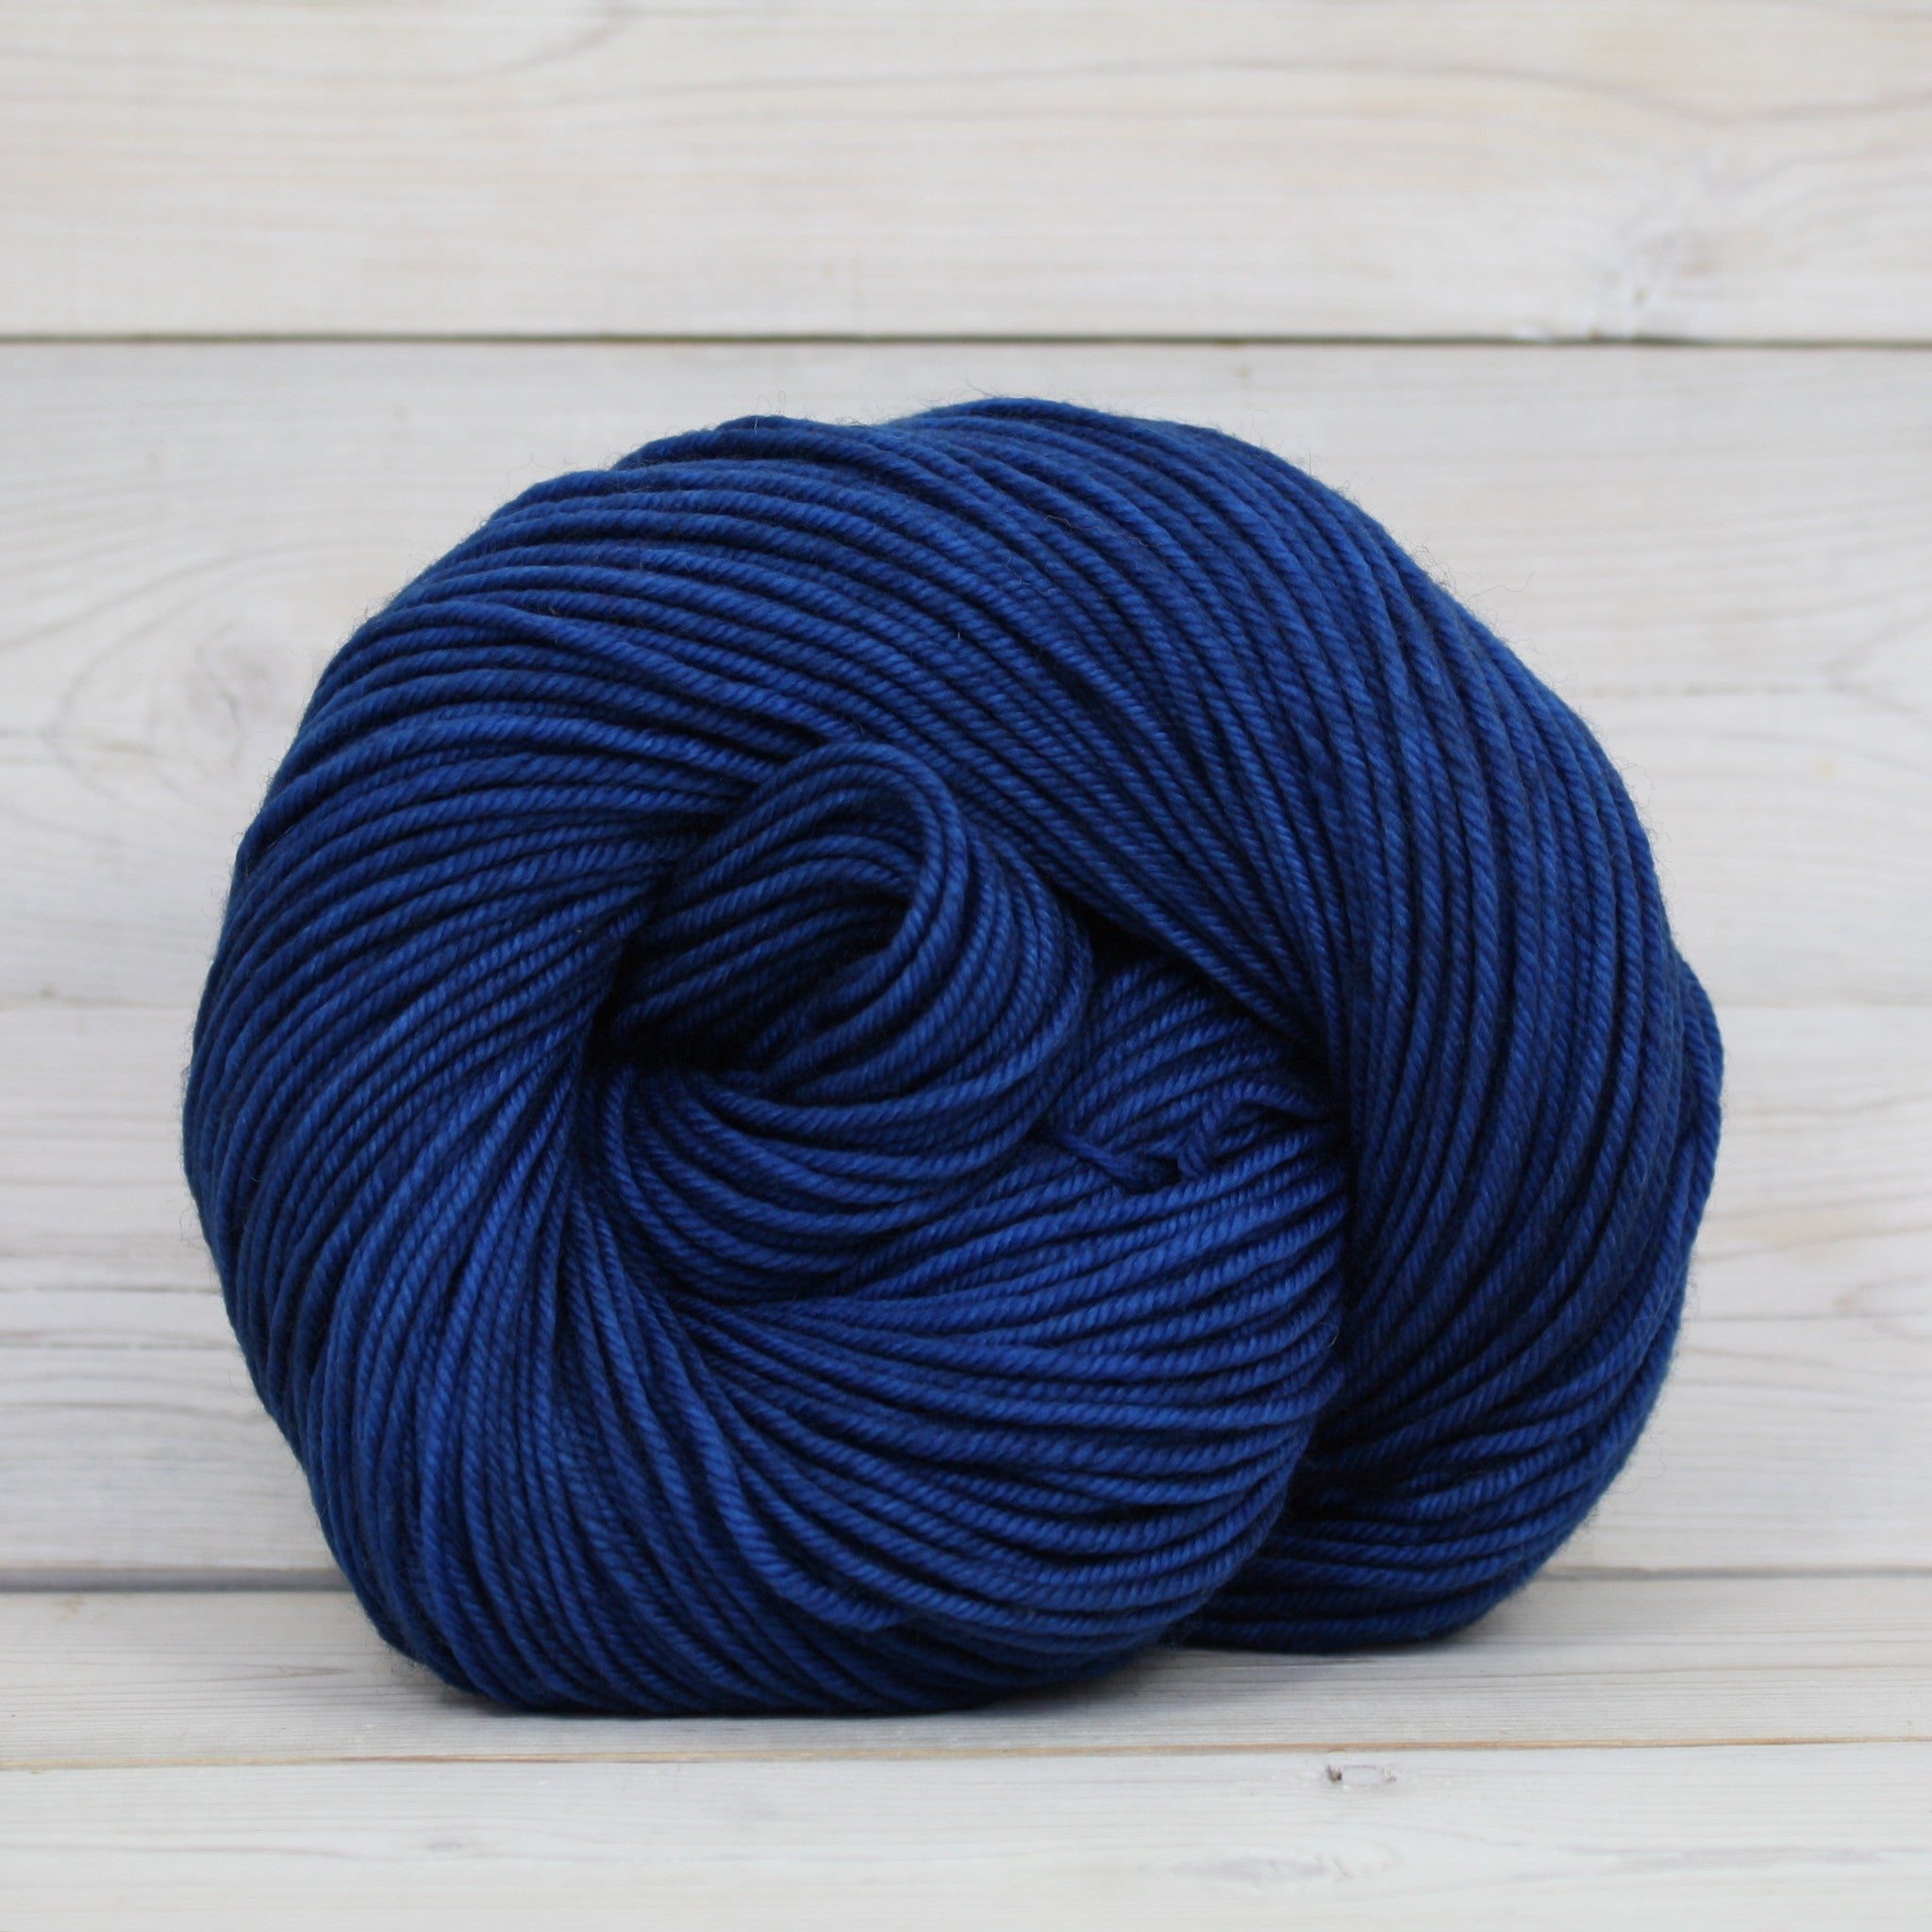 Luna Grey Fiber Arts Calypso Yarn | Colorway: Lapis